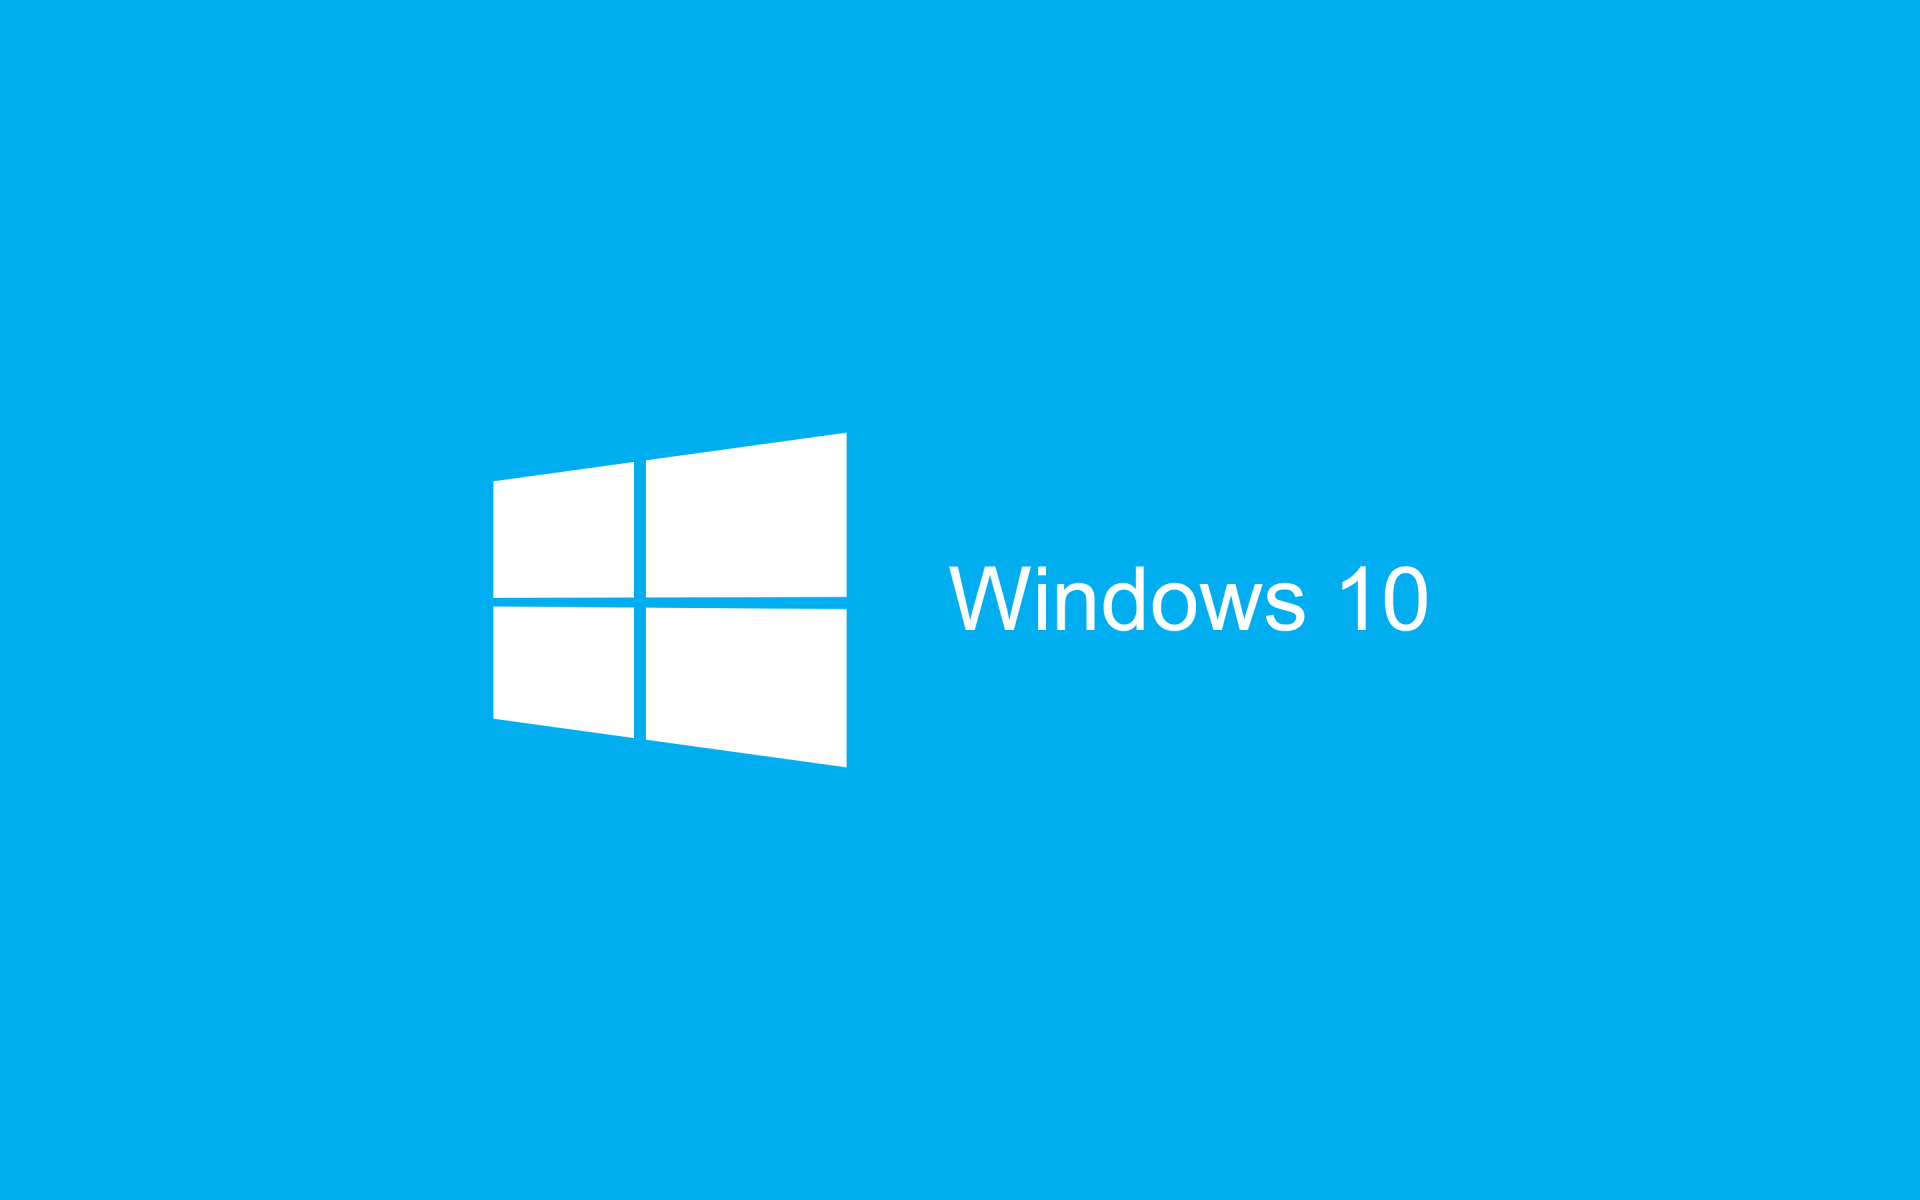 Windows 10 Releasing On 29th July